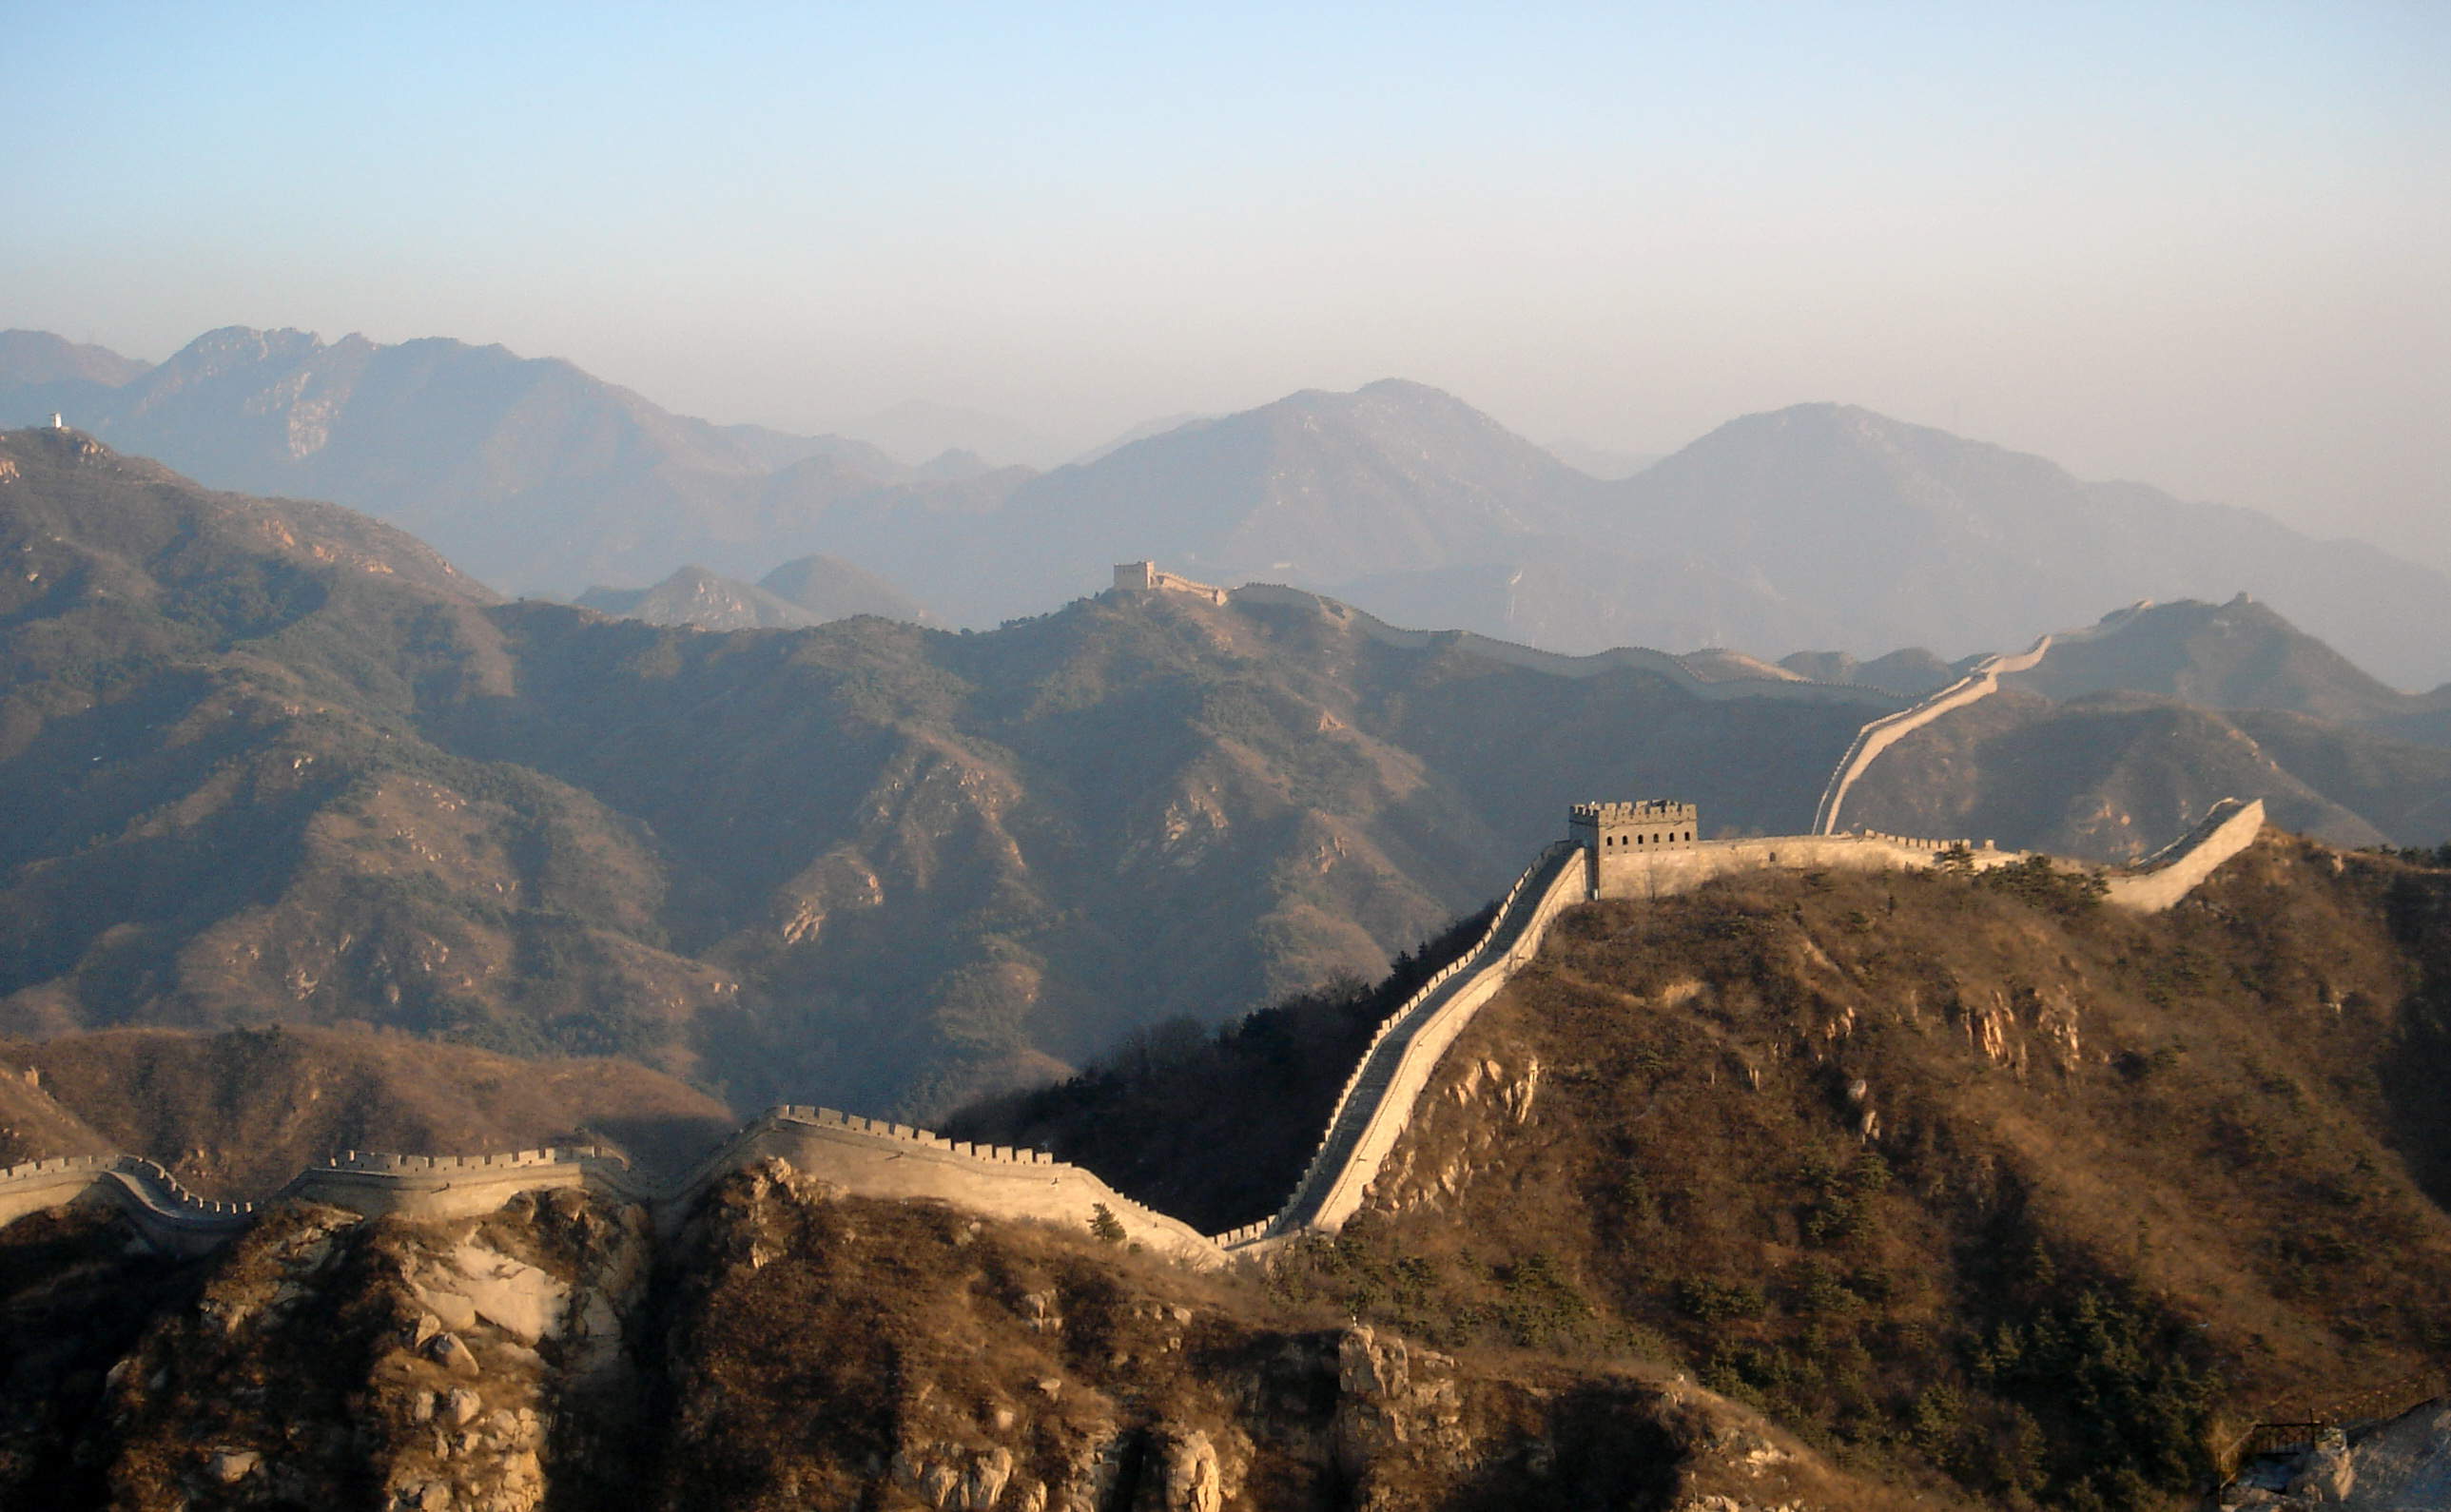 What does the great wall of china look like